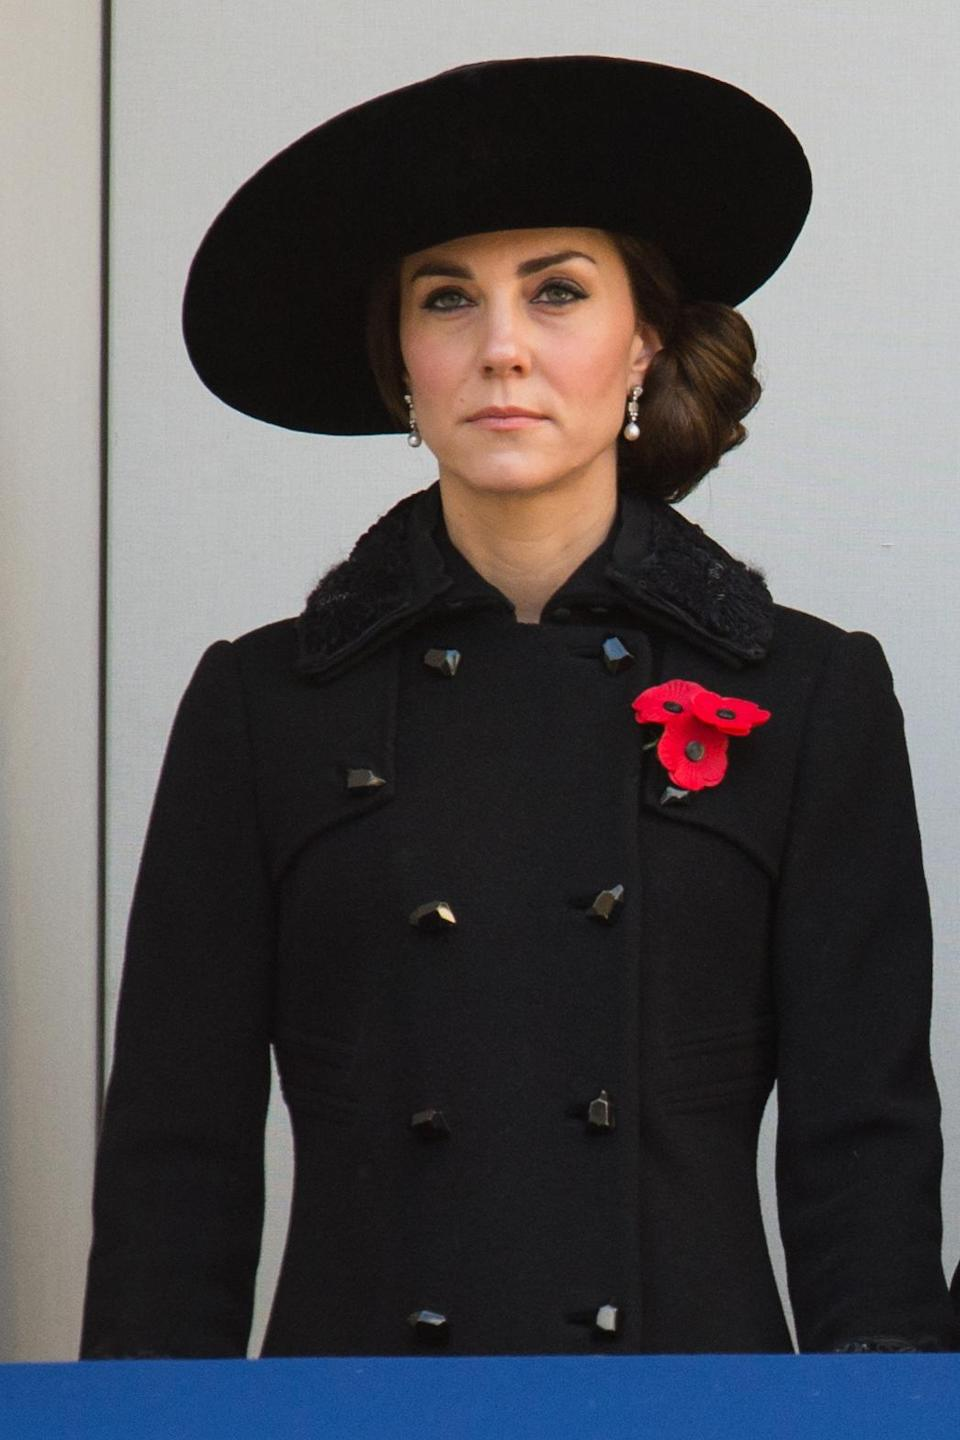 <p>For Remembrance Sunday, Kate wore a suitably sombre look. Dressed entirely in black, she joined other members of the royal family for the service in a buttoned black coat and matching wide-brimmed hat.</p><p><i>[Photo: PA]</i></p>